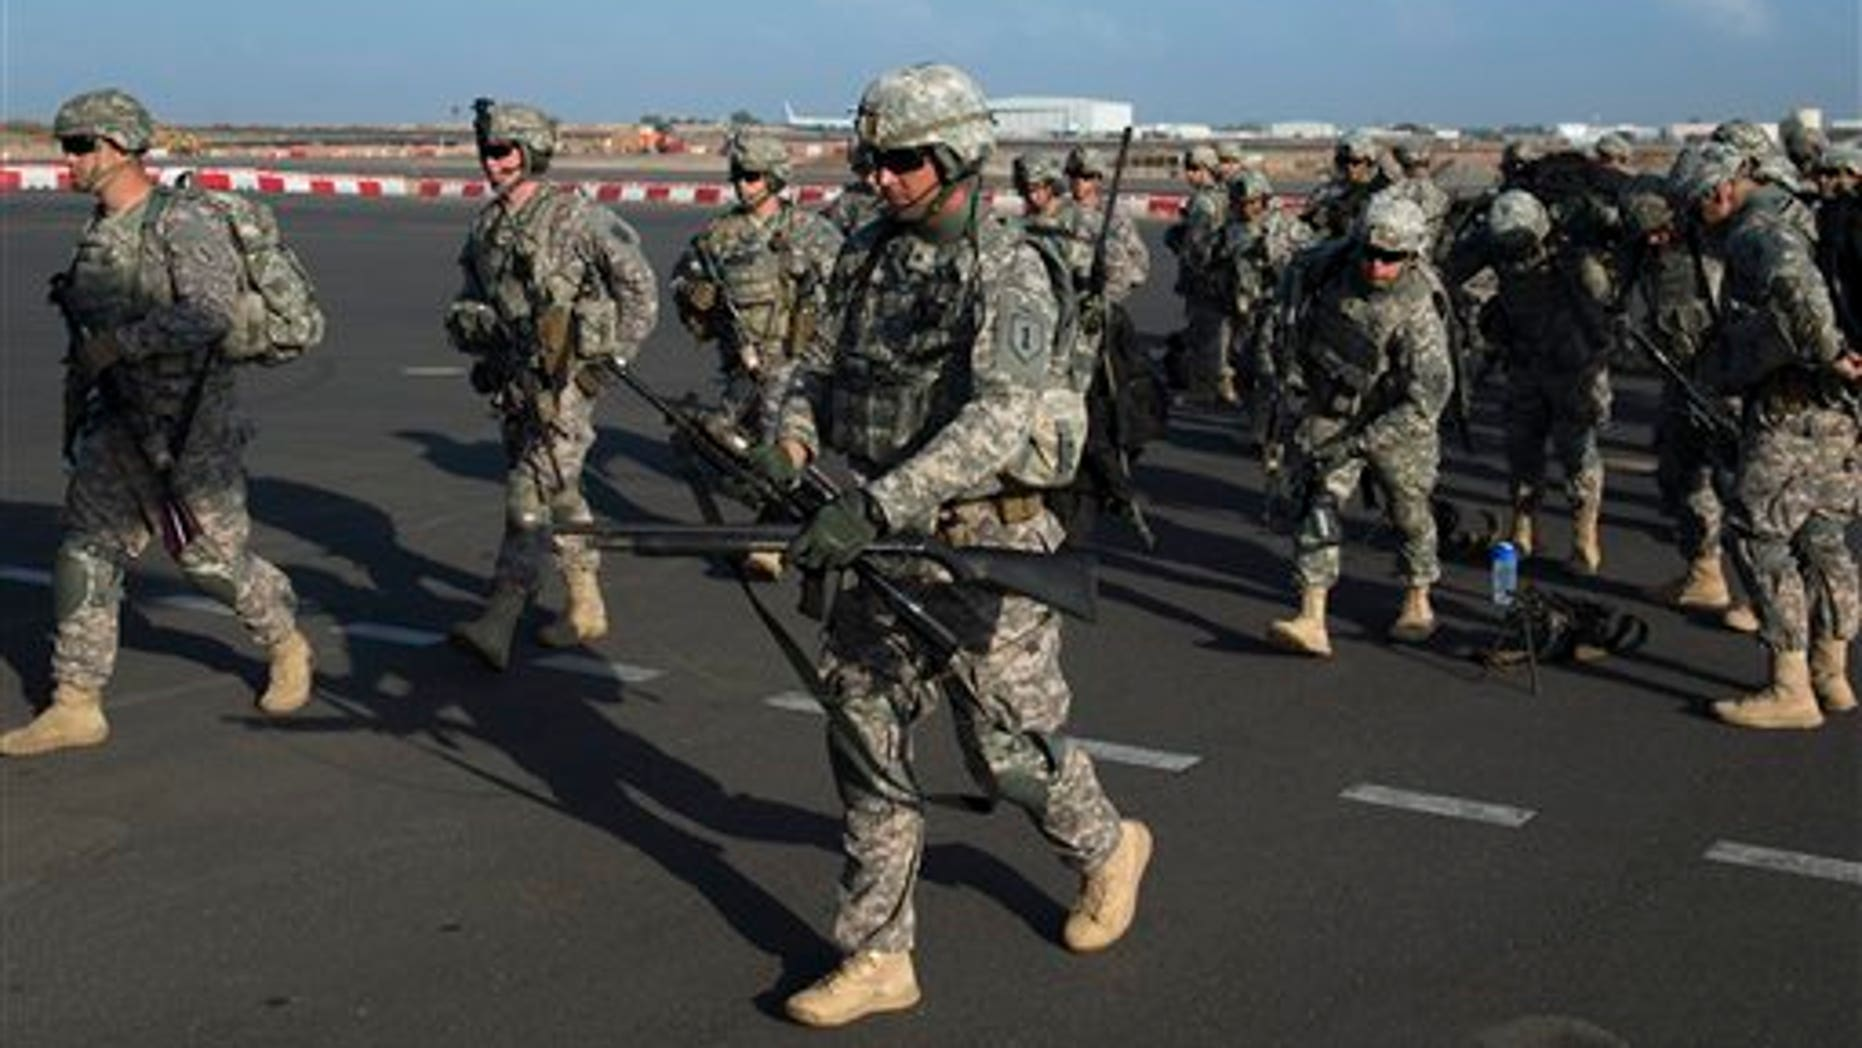 In this photo taken Wednesday, Dec. 18, 2013 and released by the U.S. Air Force, U.S. Army soldiers of the East Africa Response Force (EARF), a Djibouti-based joint team assigned to Combined Joint Task Force-Horn of Africa, prepare to load onto a U.S. Air Force C-130 Hercules at Camp Lemonnier, Djibouti, to support with an ordered departure of personnel from Juba, South Sudan. Gunfire hit three U.S. military CV-22 Osprey aircraft Saturday, Dec. 21, 2013 trying to evacuate American citizens in Bor, the capital of the remote region of Jonglei state in South Sudan, that on Saturday became a battle ground between South Sudan's military and renegade troops, officials said, with four U.S. service members wounded in the attack. (AP Photo/U.S. Air Force, Tech. Sgt. Micah Theurich)